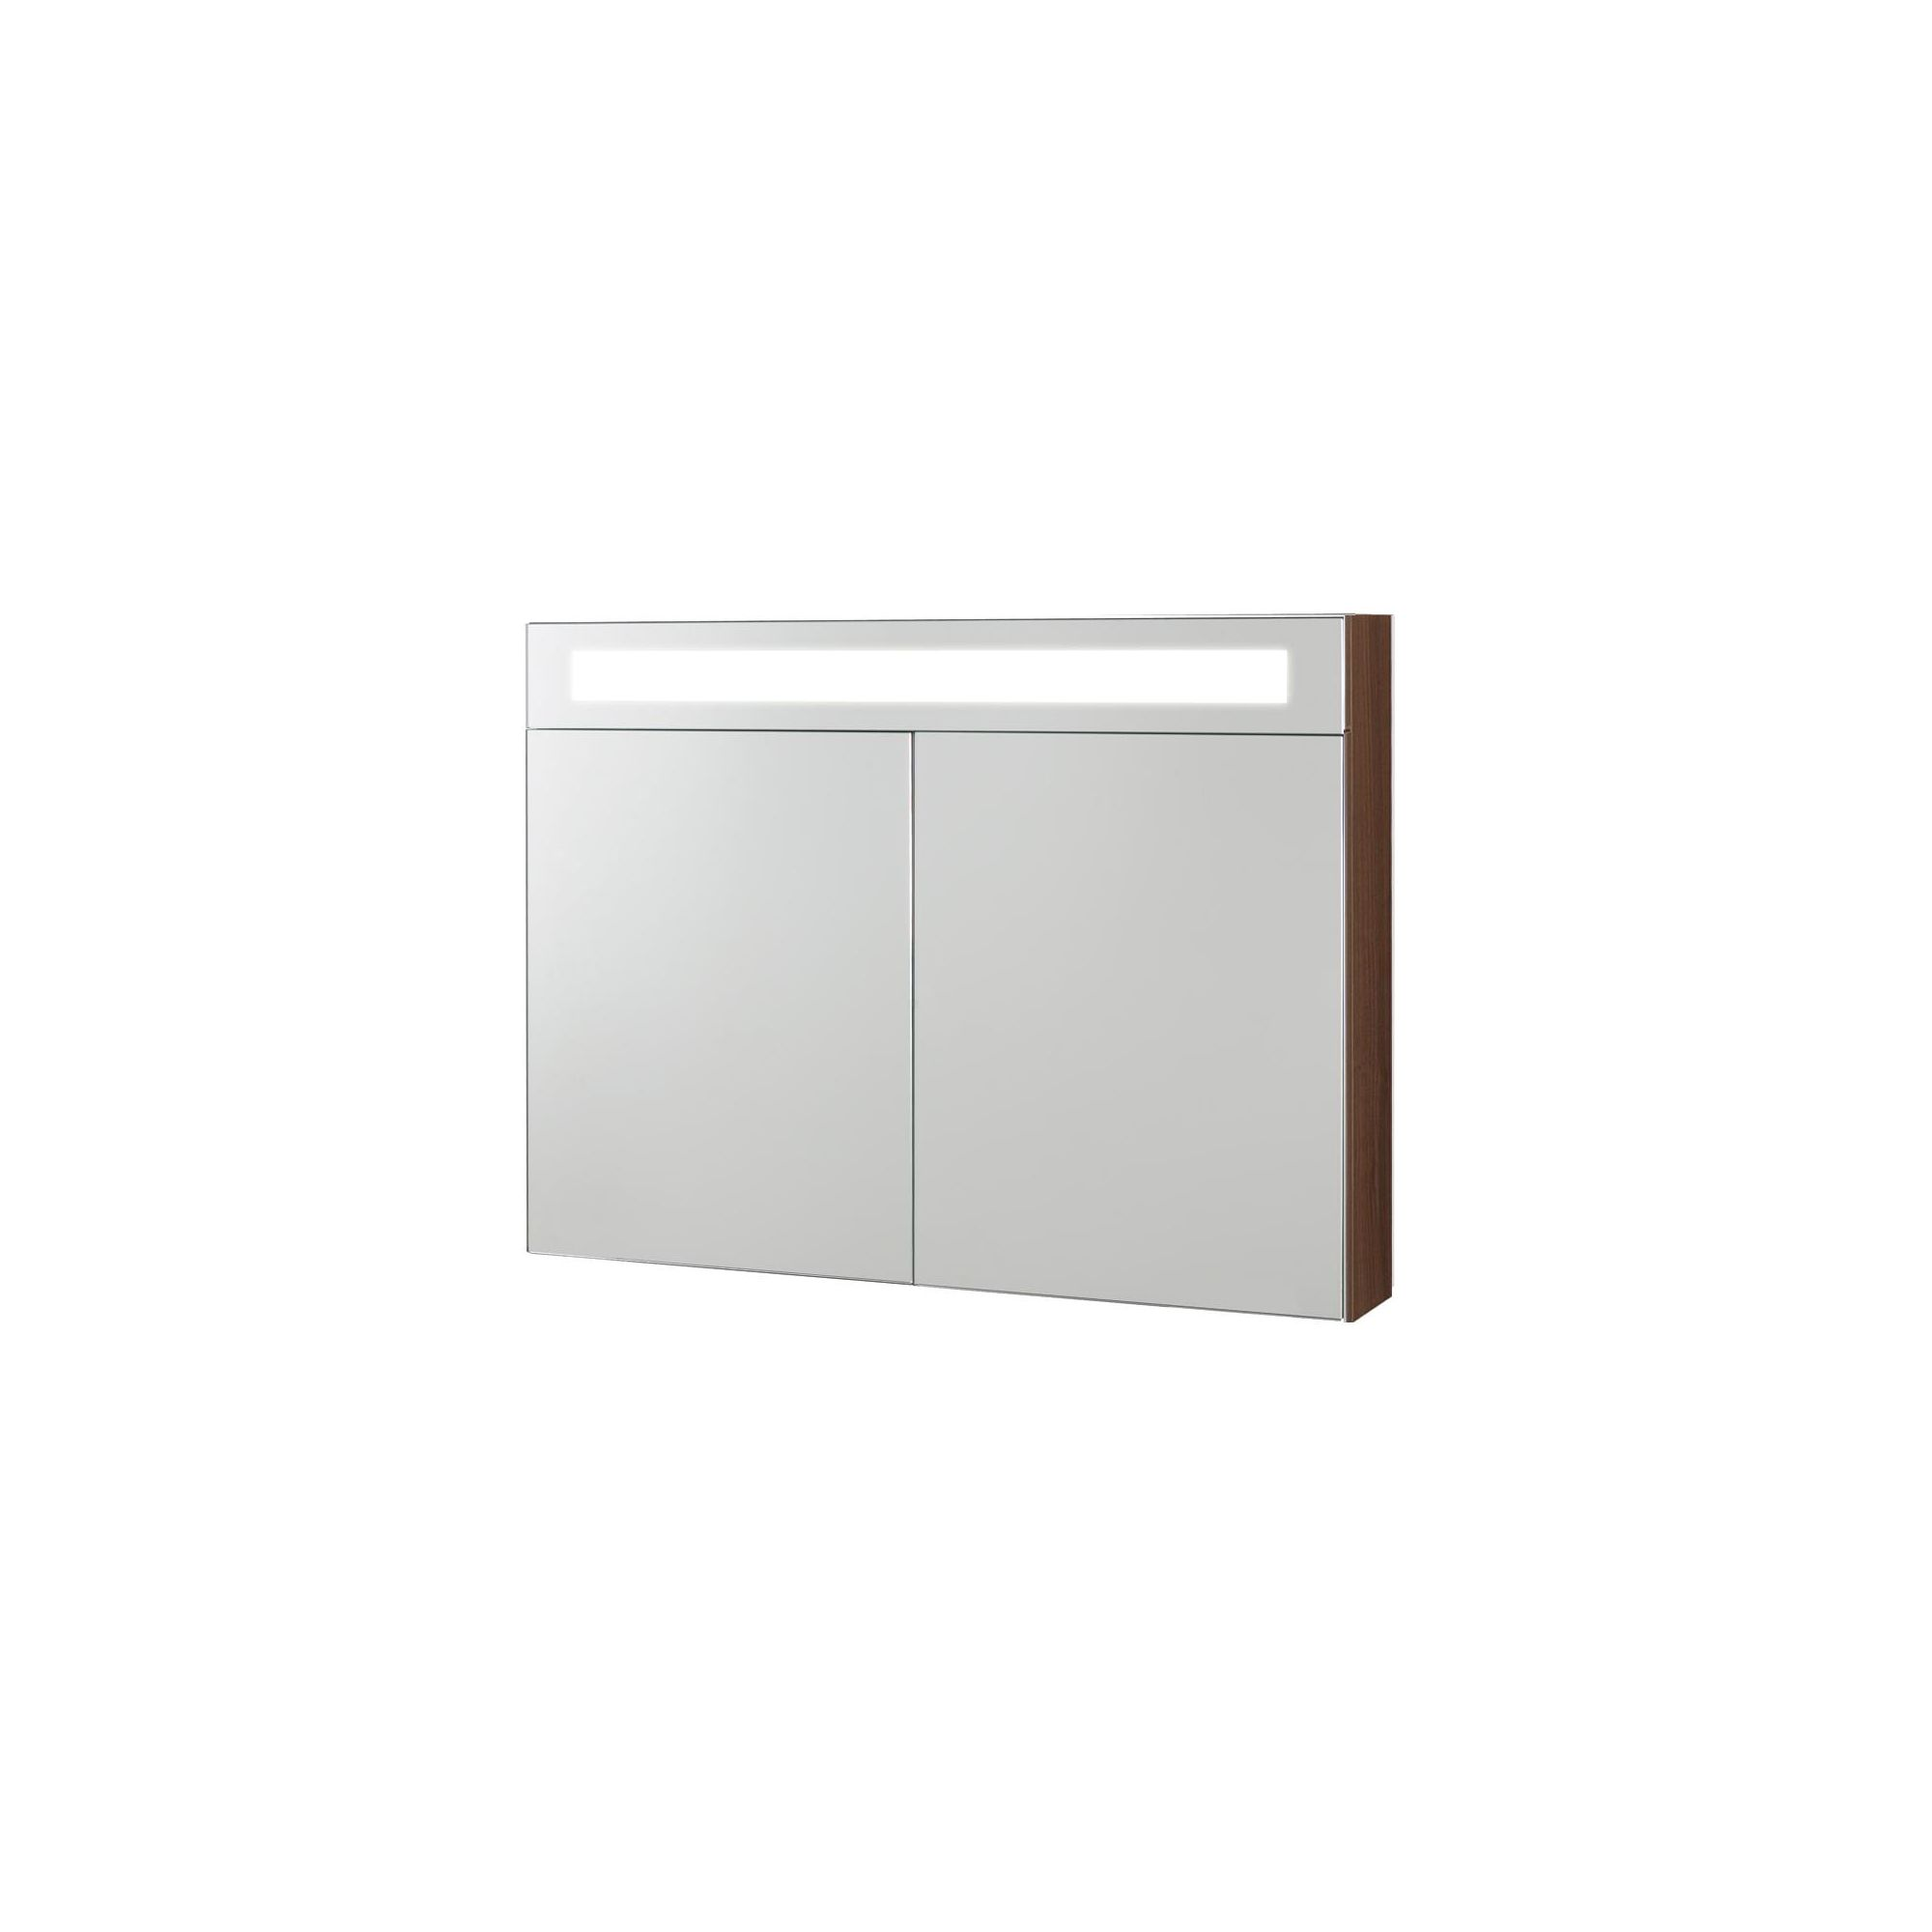 Myshop for Bathroom cabinets 800mm high